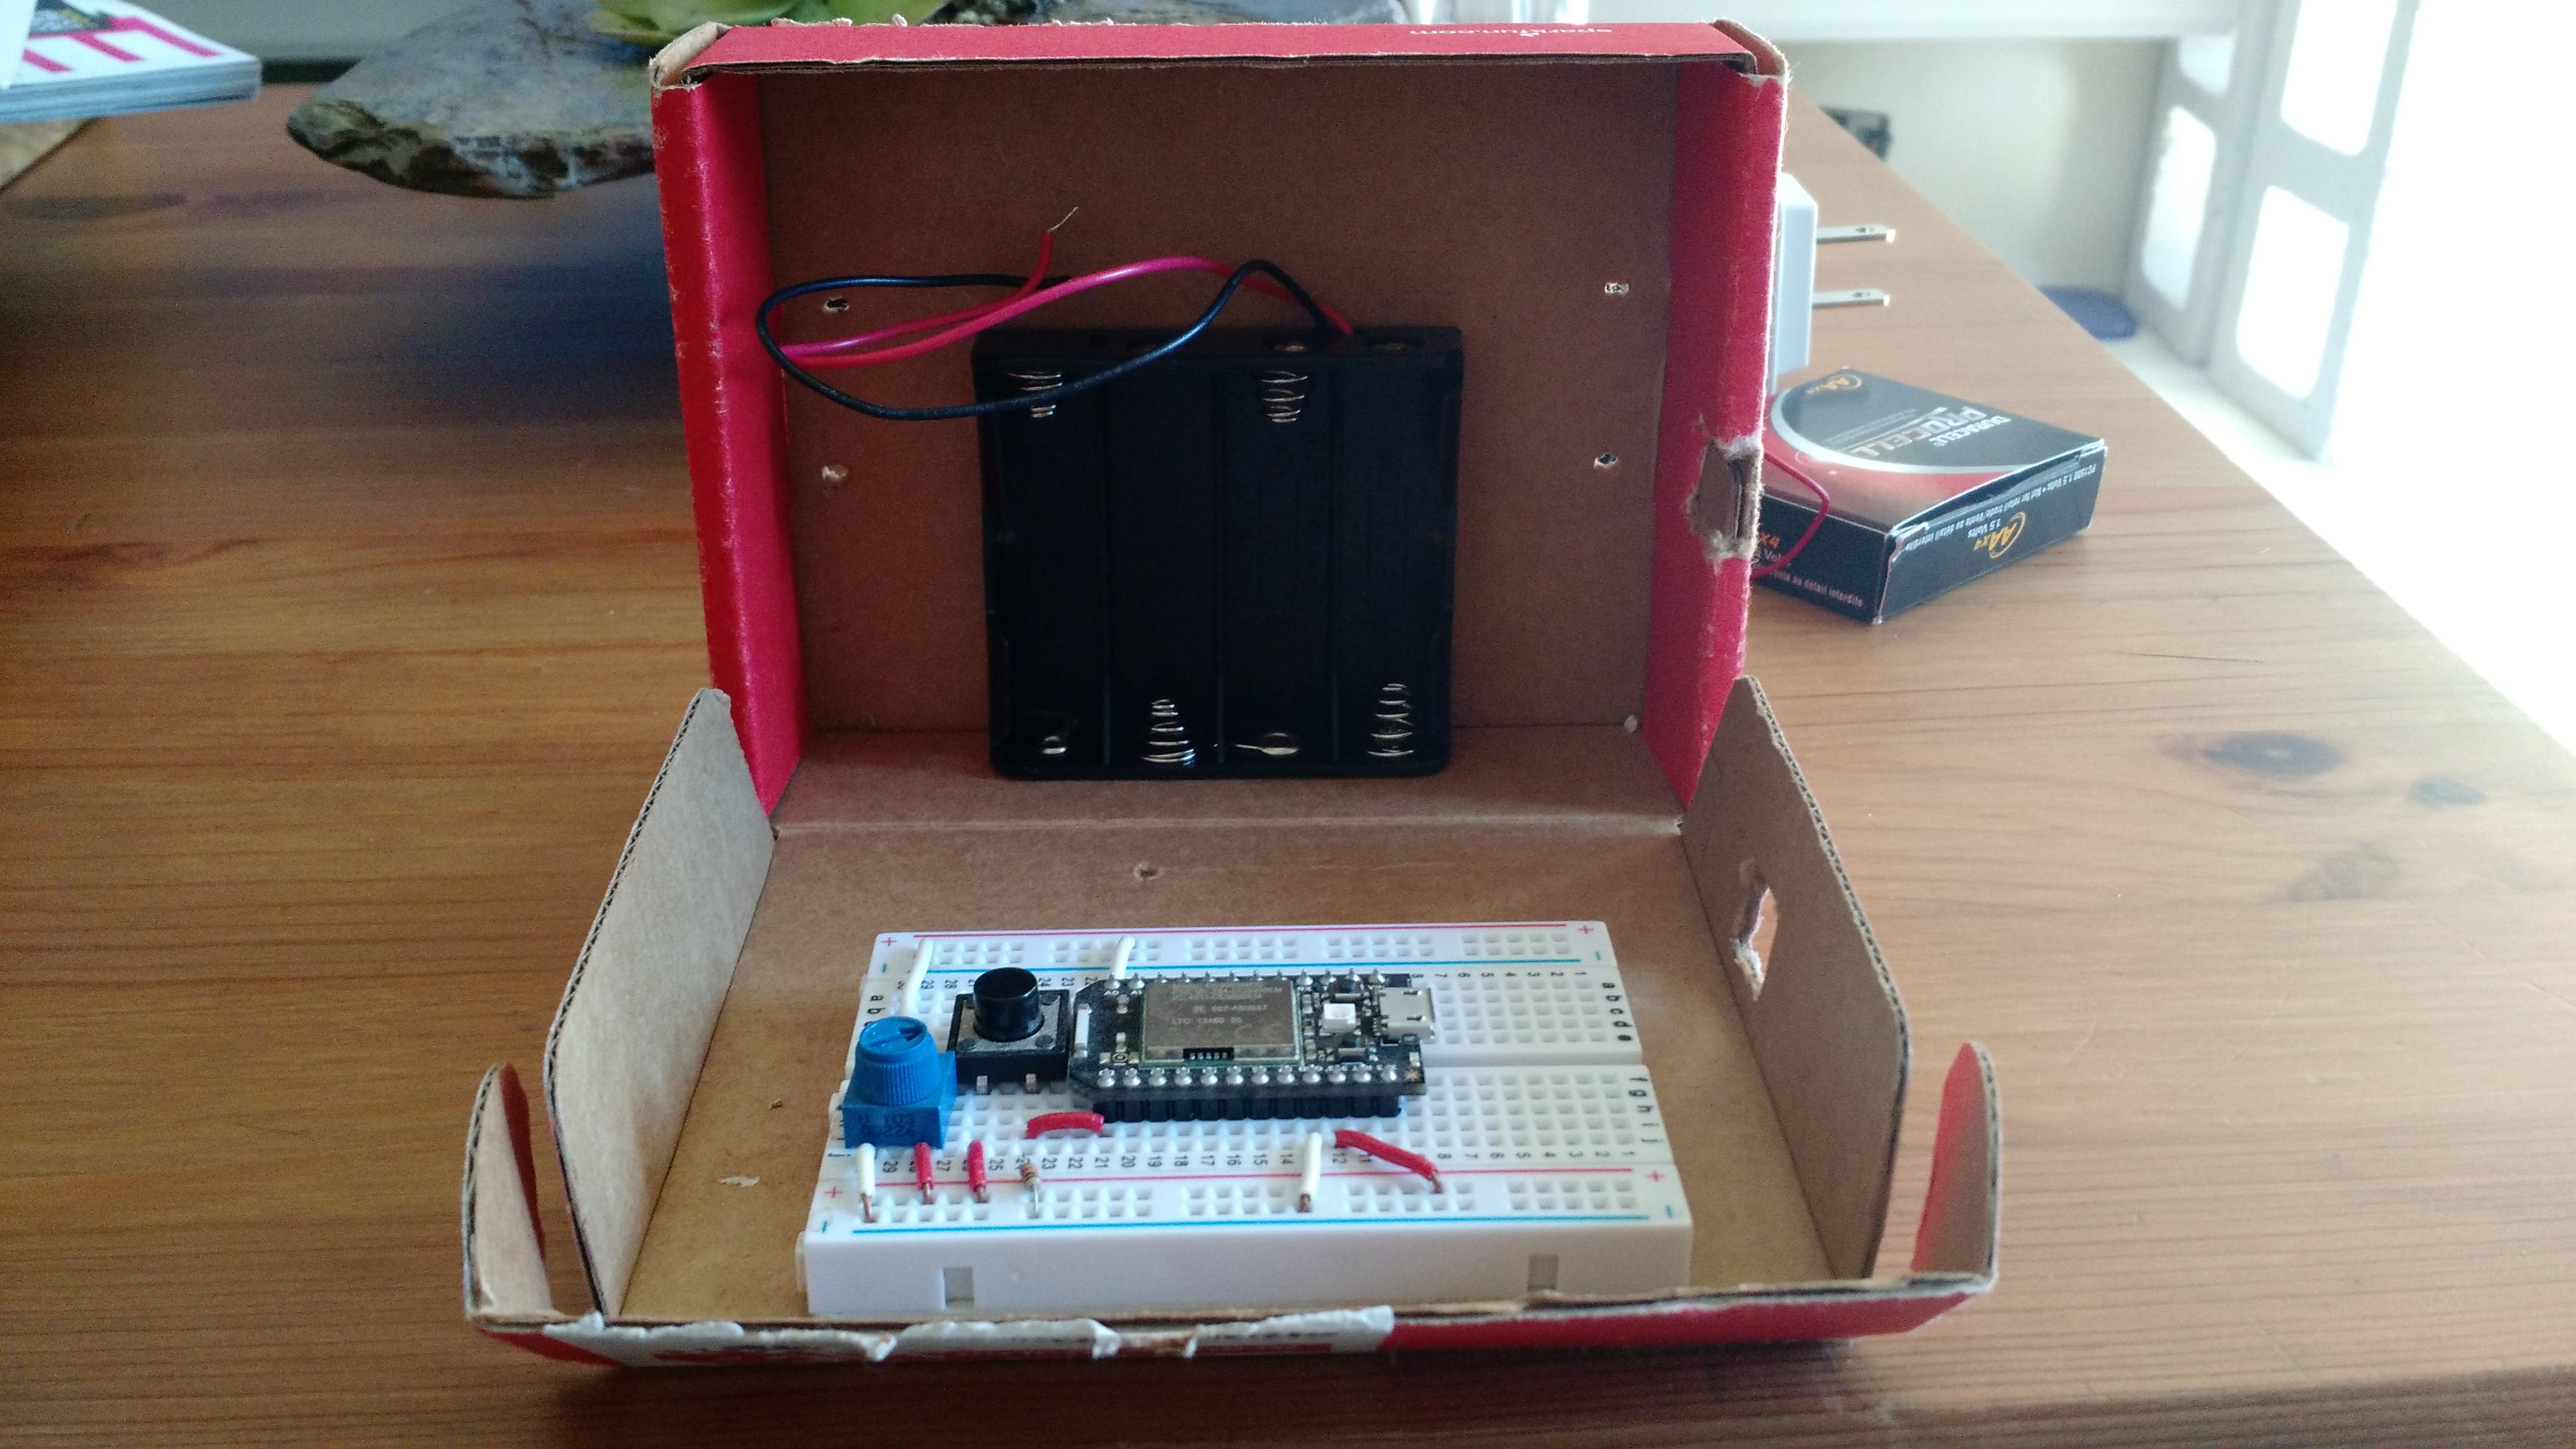 The breadboard and batter holder installed inside of the opened project box.